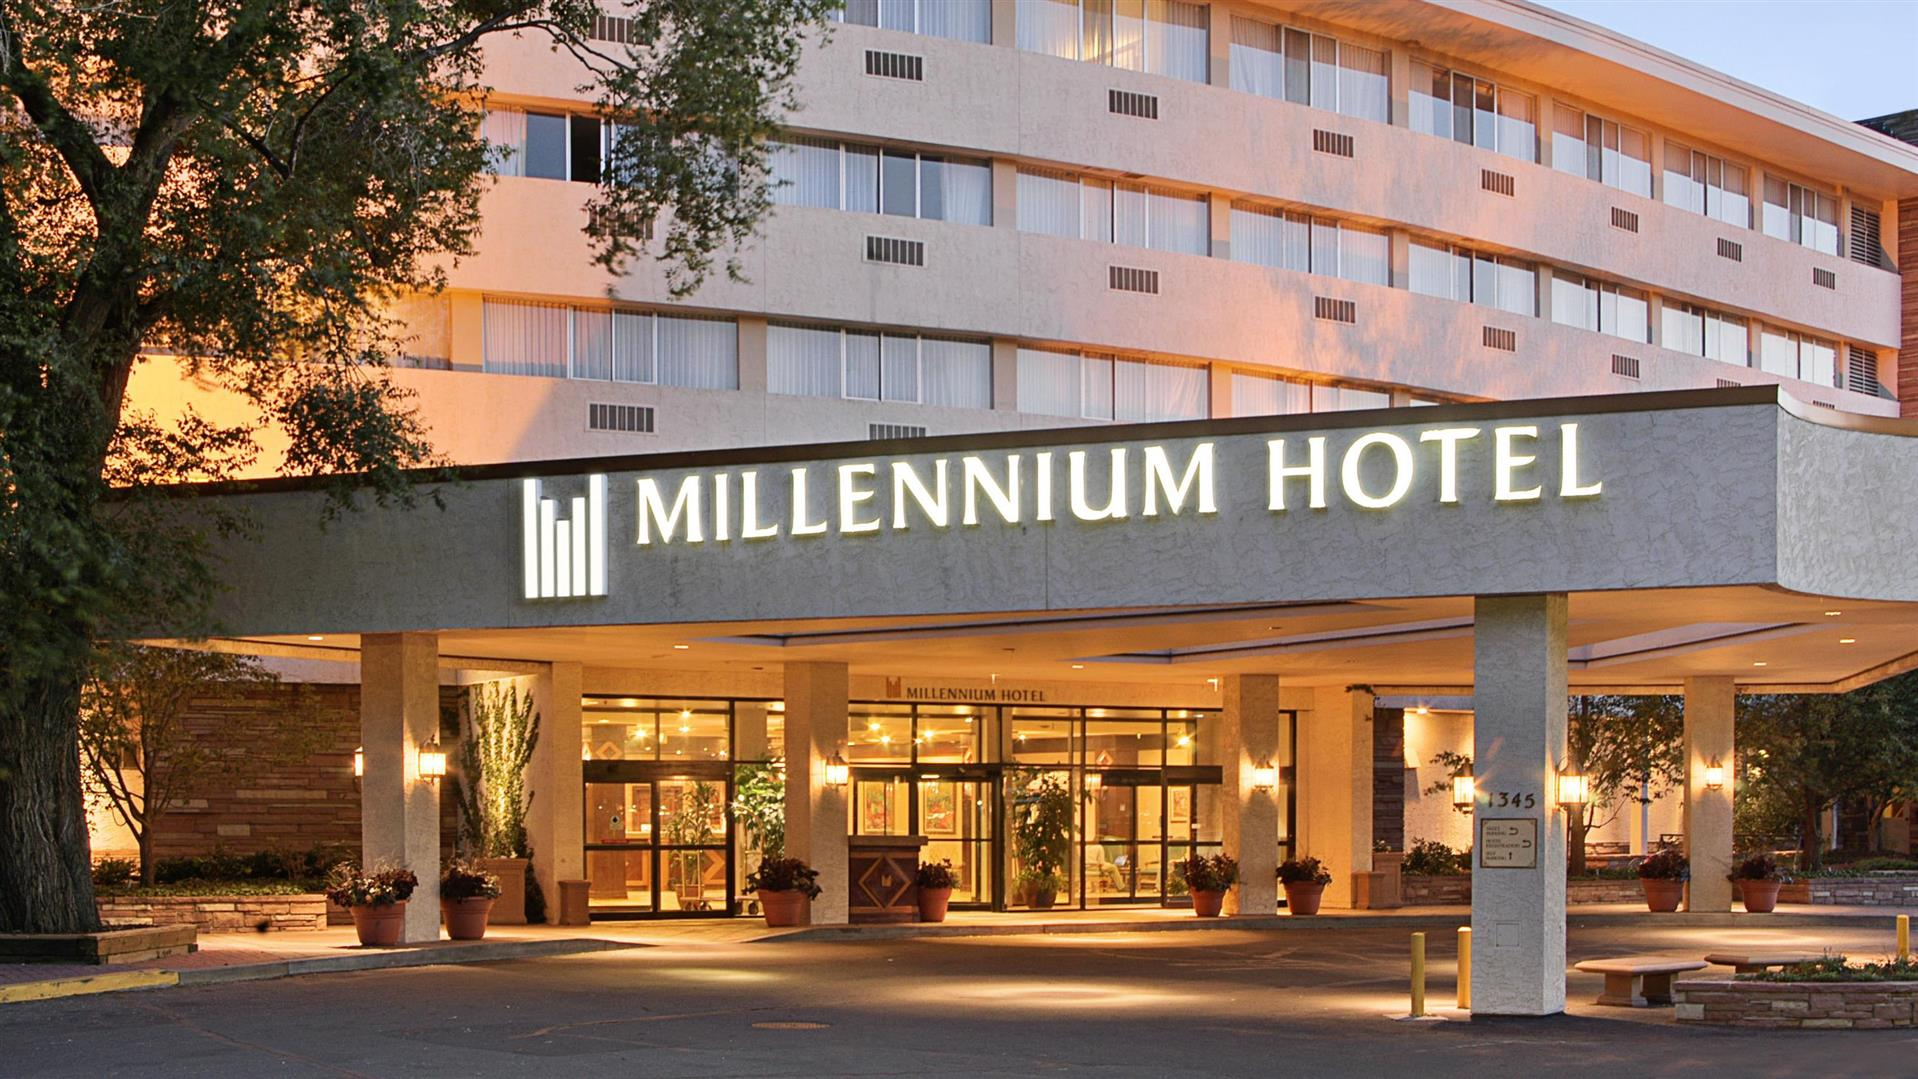 image of front of Millennium Hotel in Boulder, CO